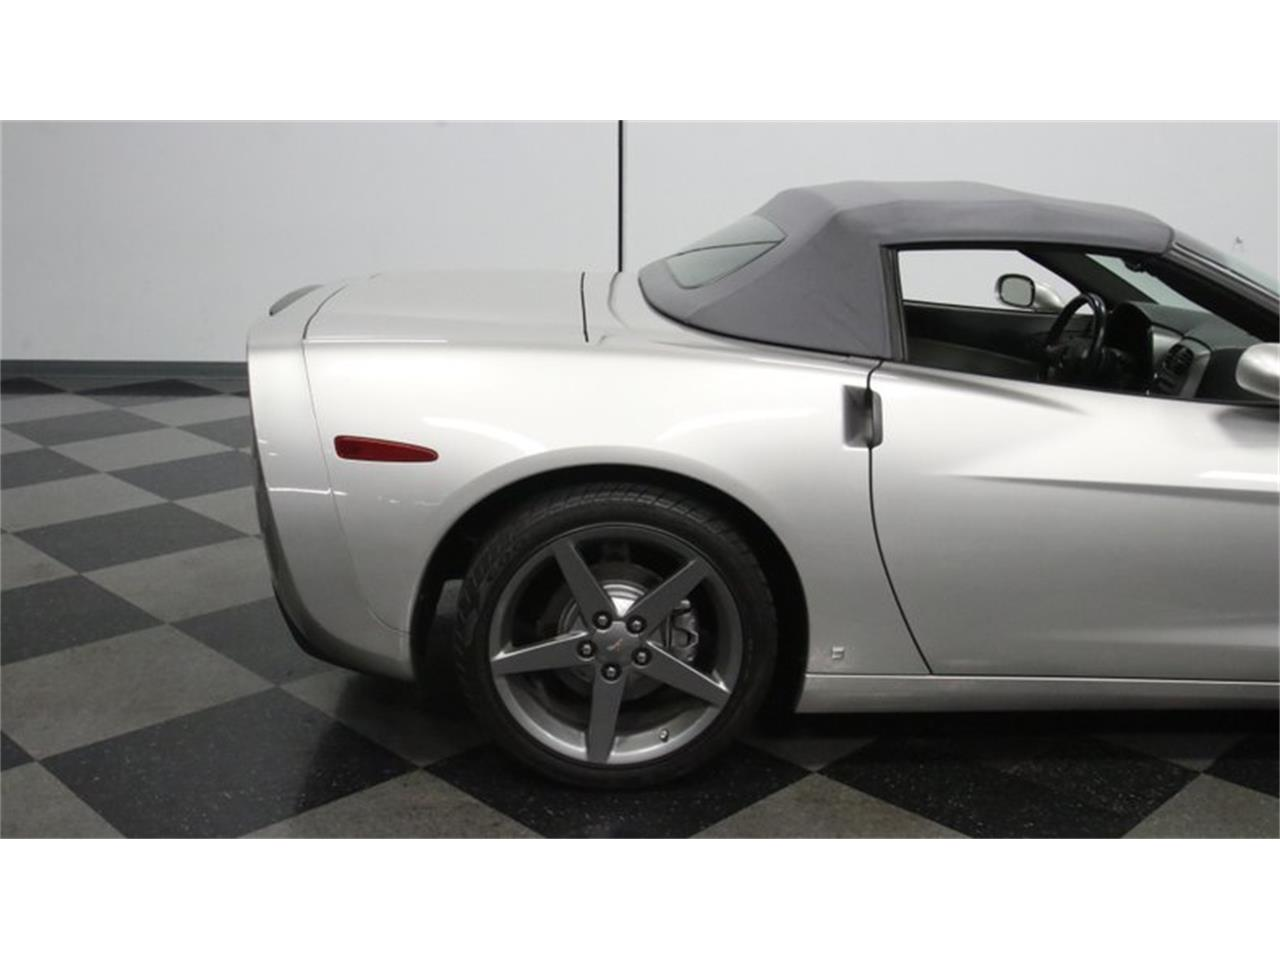 2006 Chevrolet Corvette (CC-1384891) for sale in Lithia Springs, Georgia